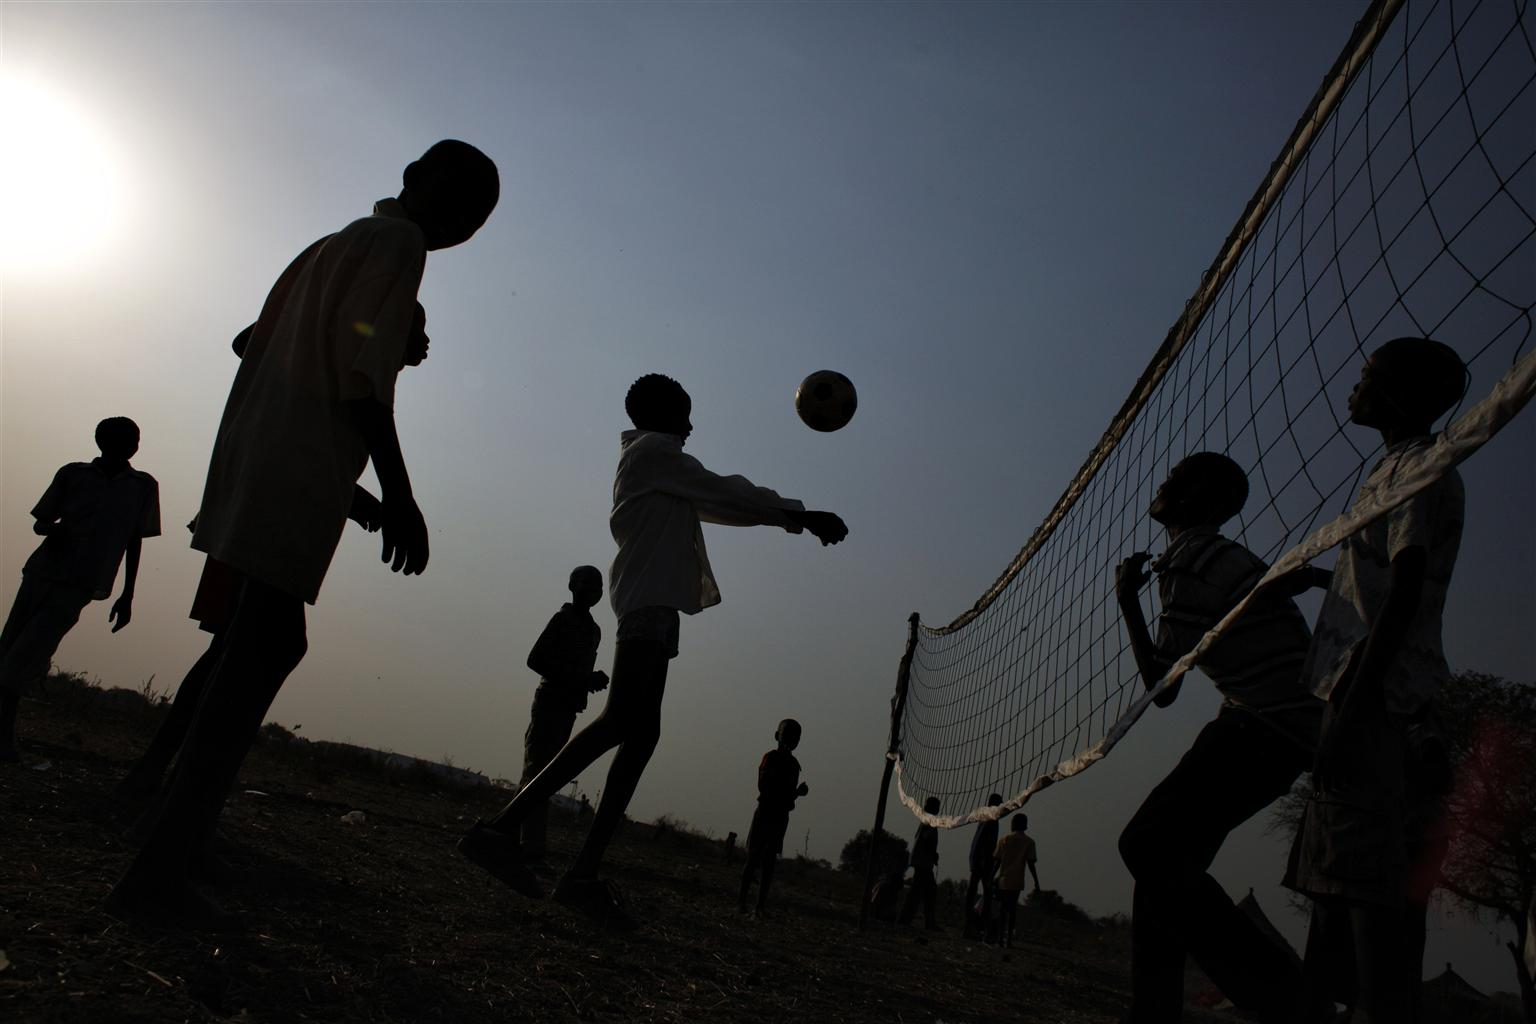 Taken in 2012, this photo shows a group of boys displaced by violence, playing in a UNICEF-supported child friendly space.